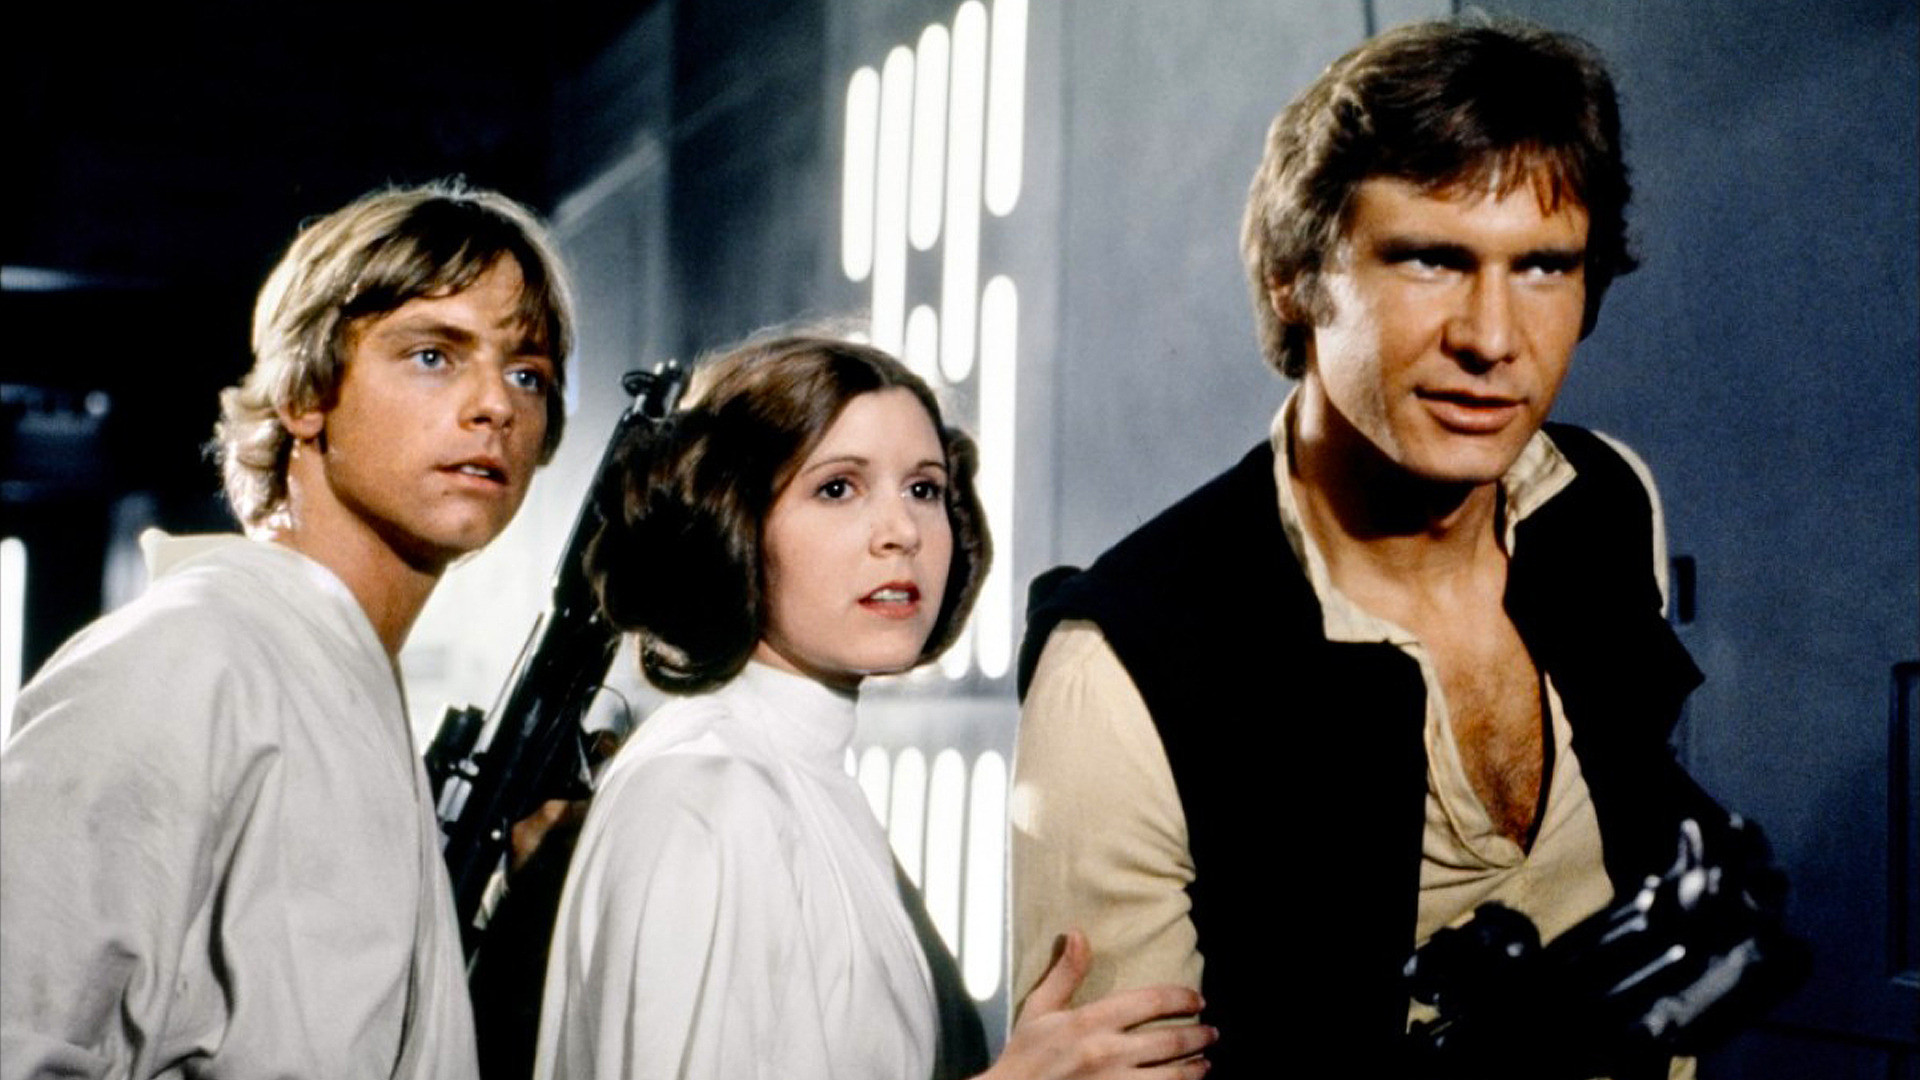 Download Star Wars: Episode IV - A New Hope HD